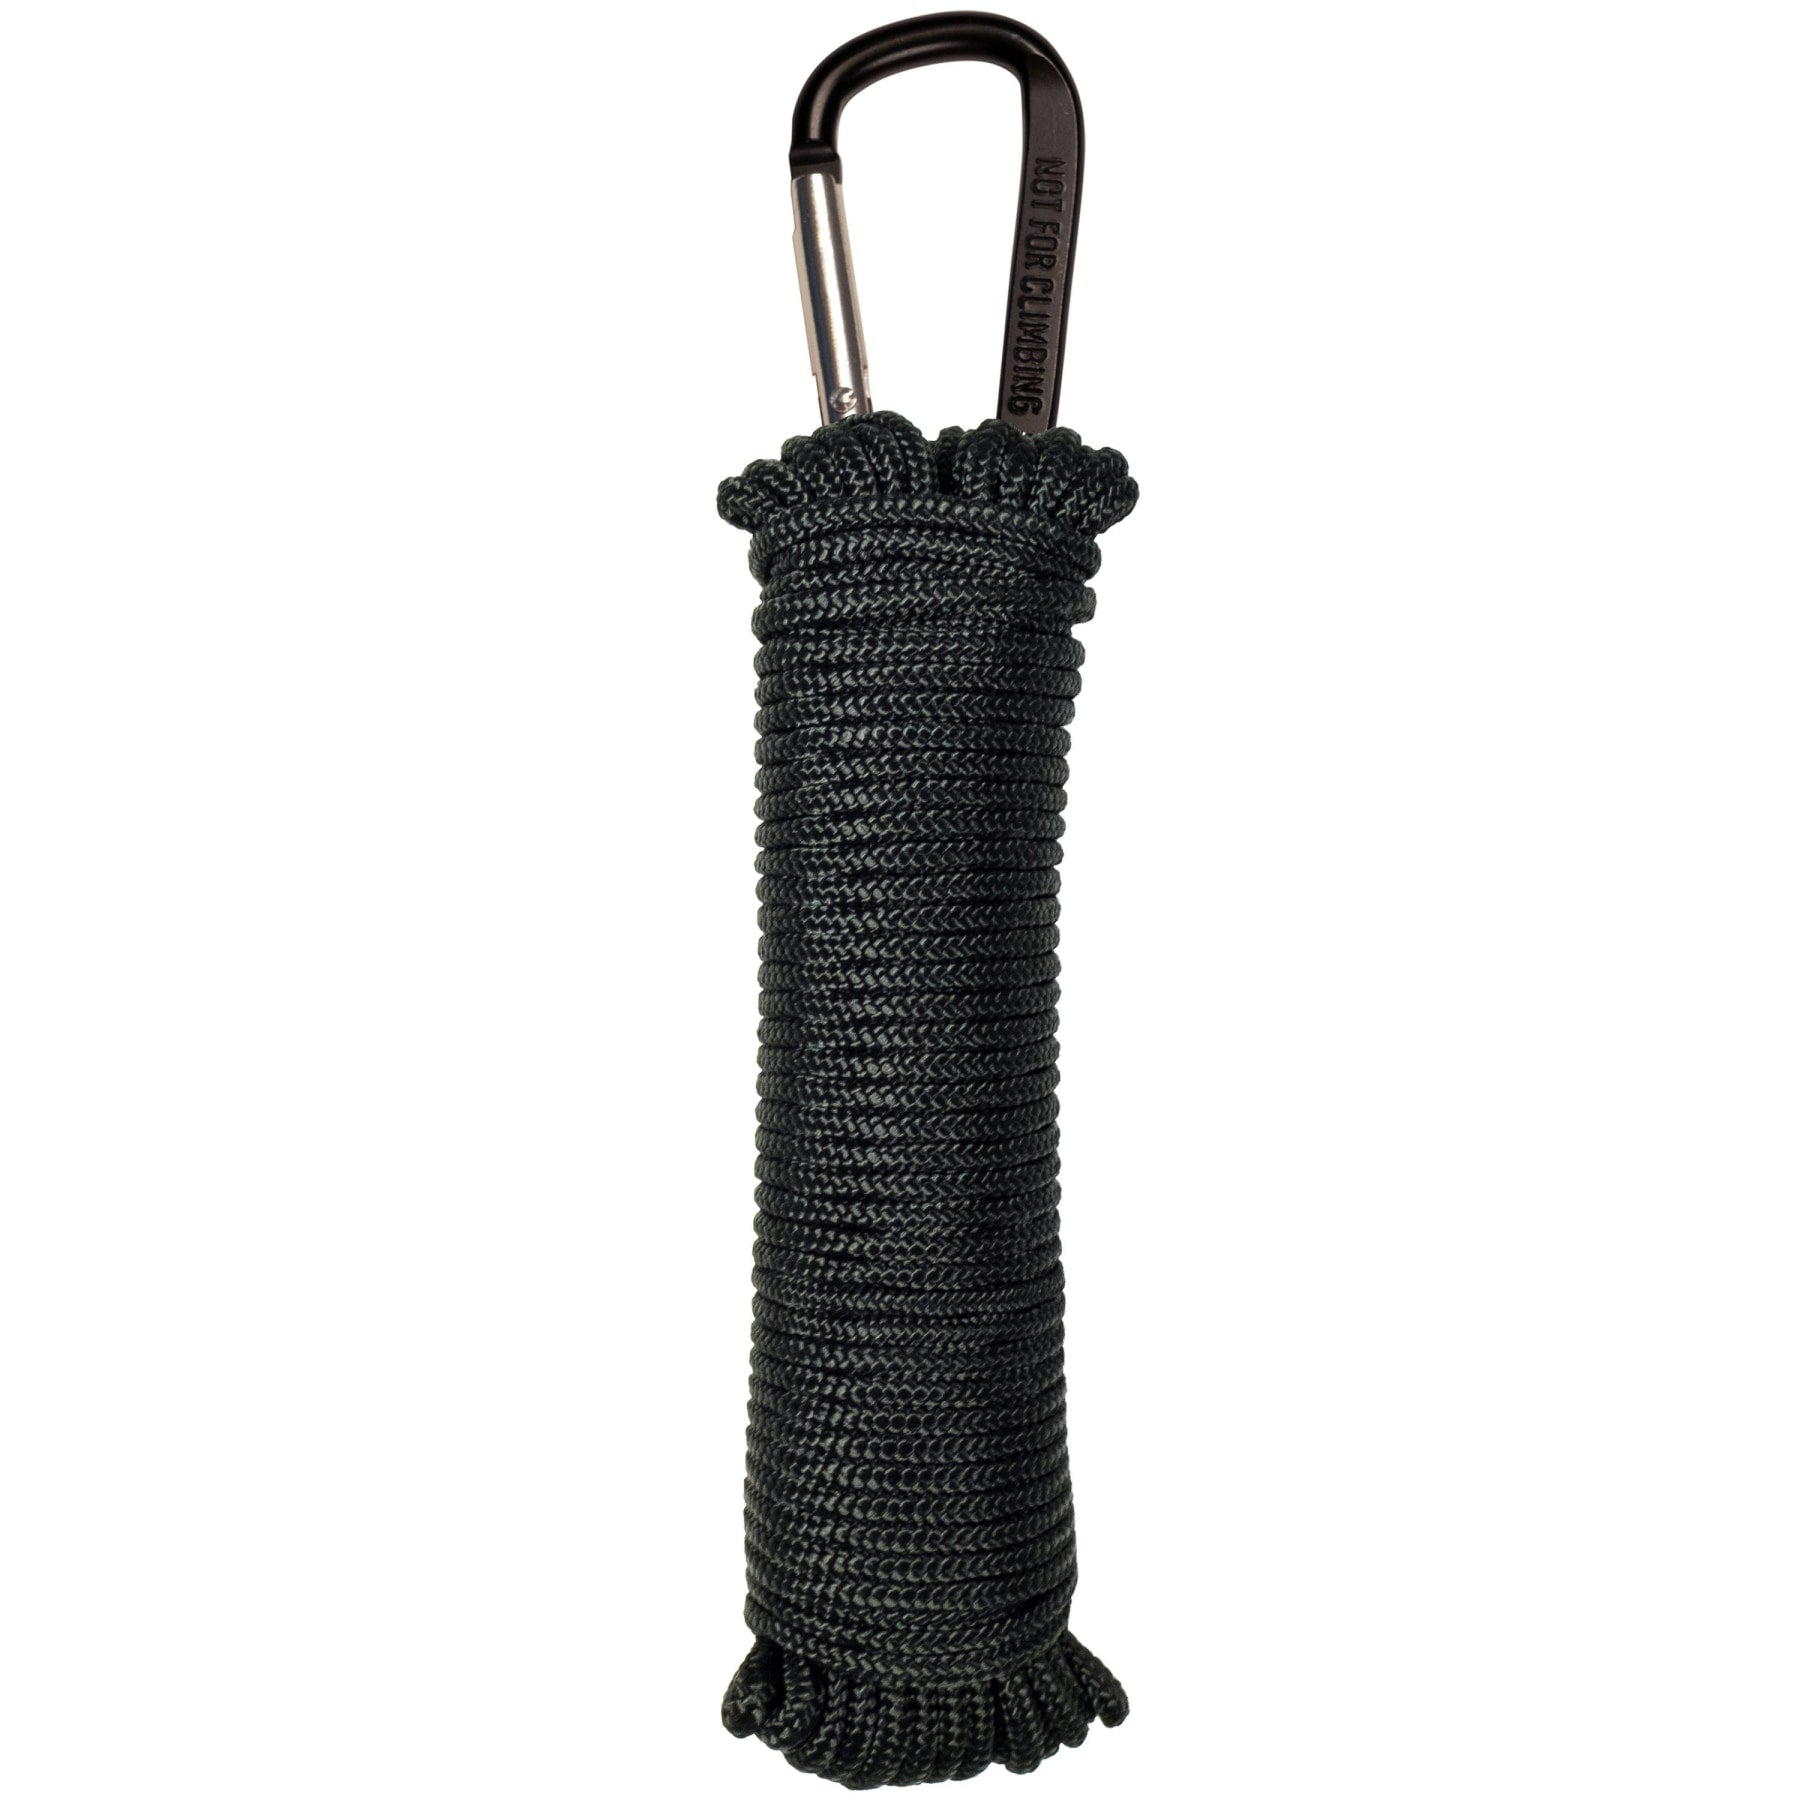 325 Paracord - 50 With Carabiner - Black - Outdoor Equipment - Mcnett Tactical - Colonel Mustard